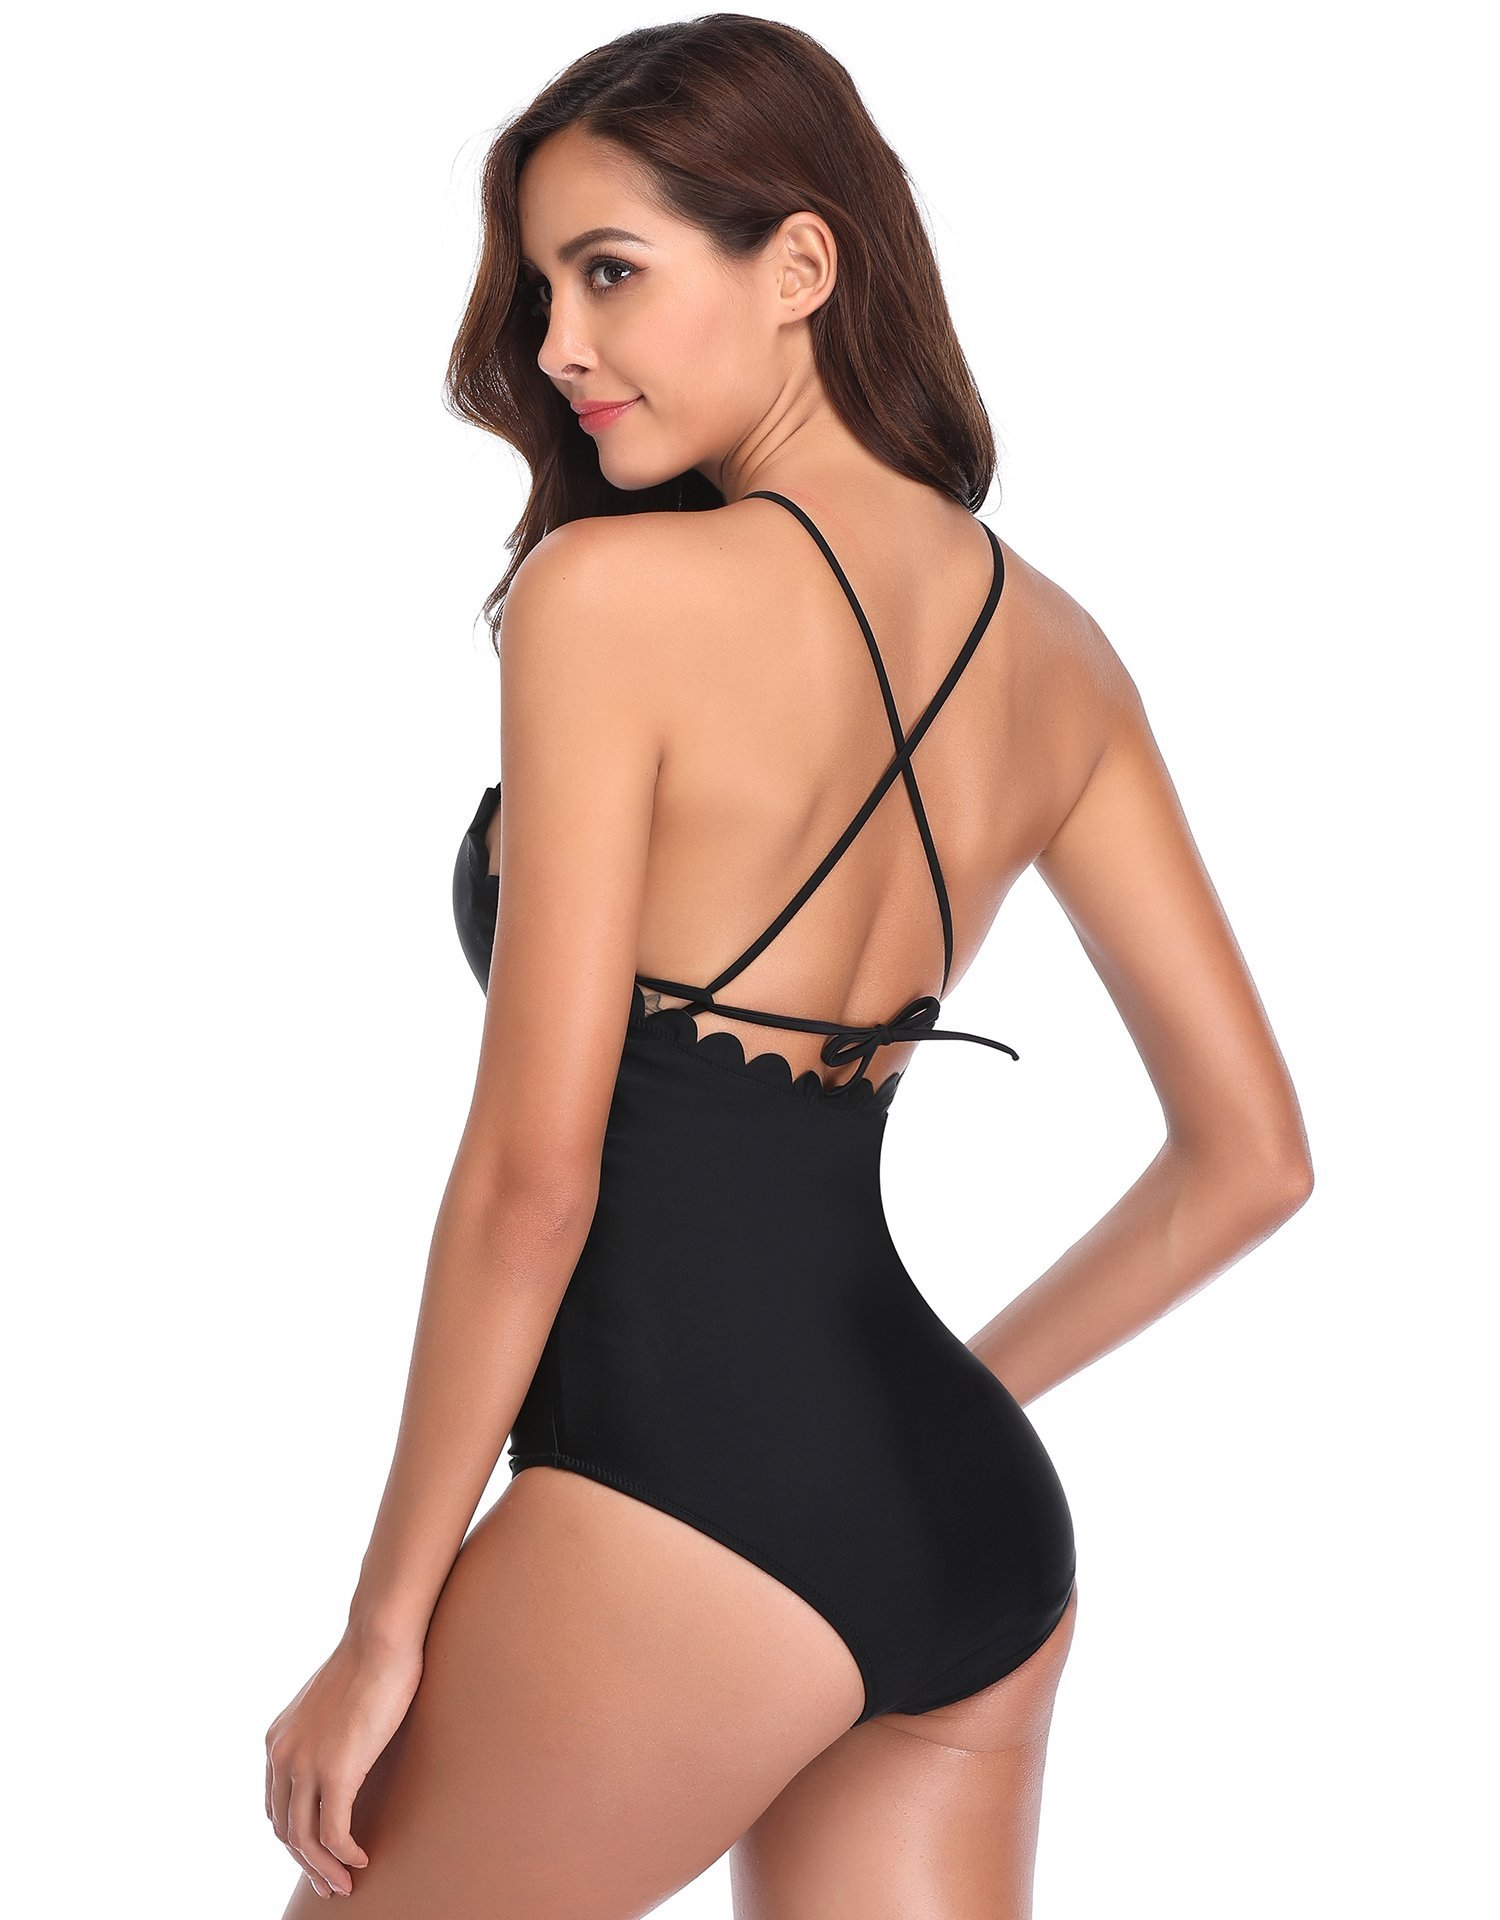 MarinaVida Women One Piece Swimsuit